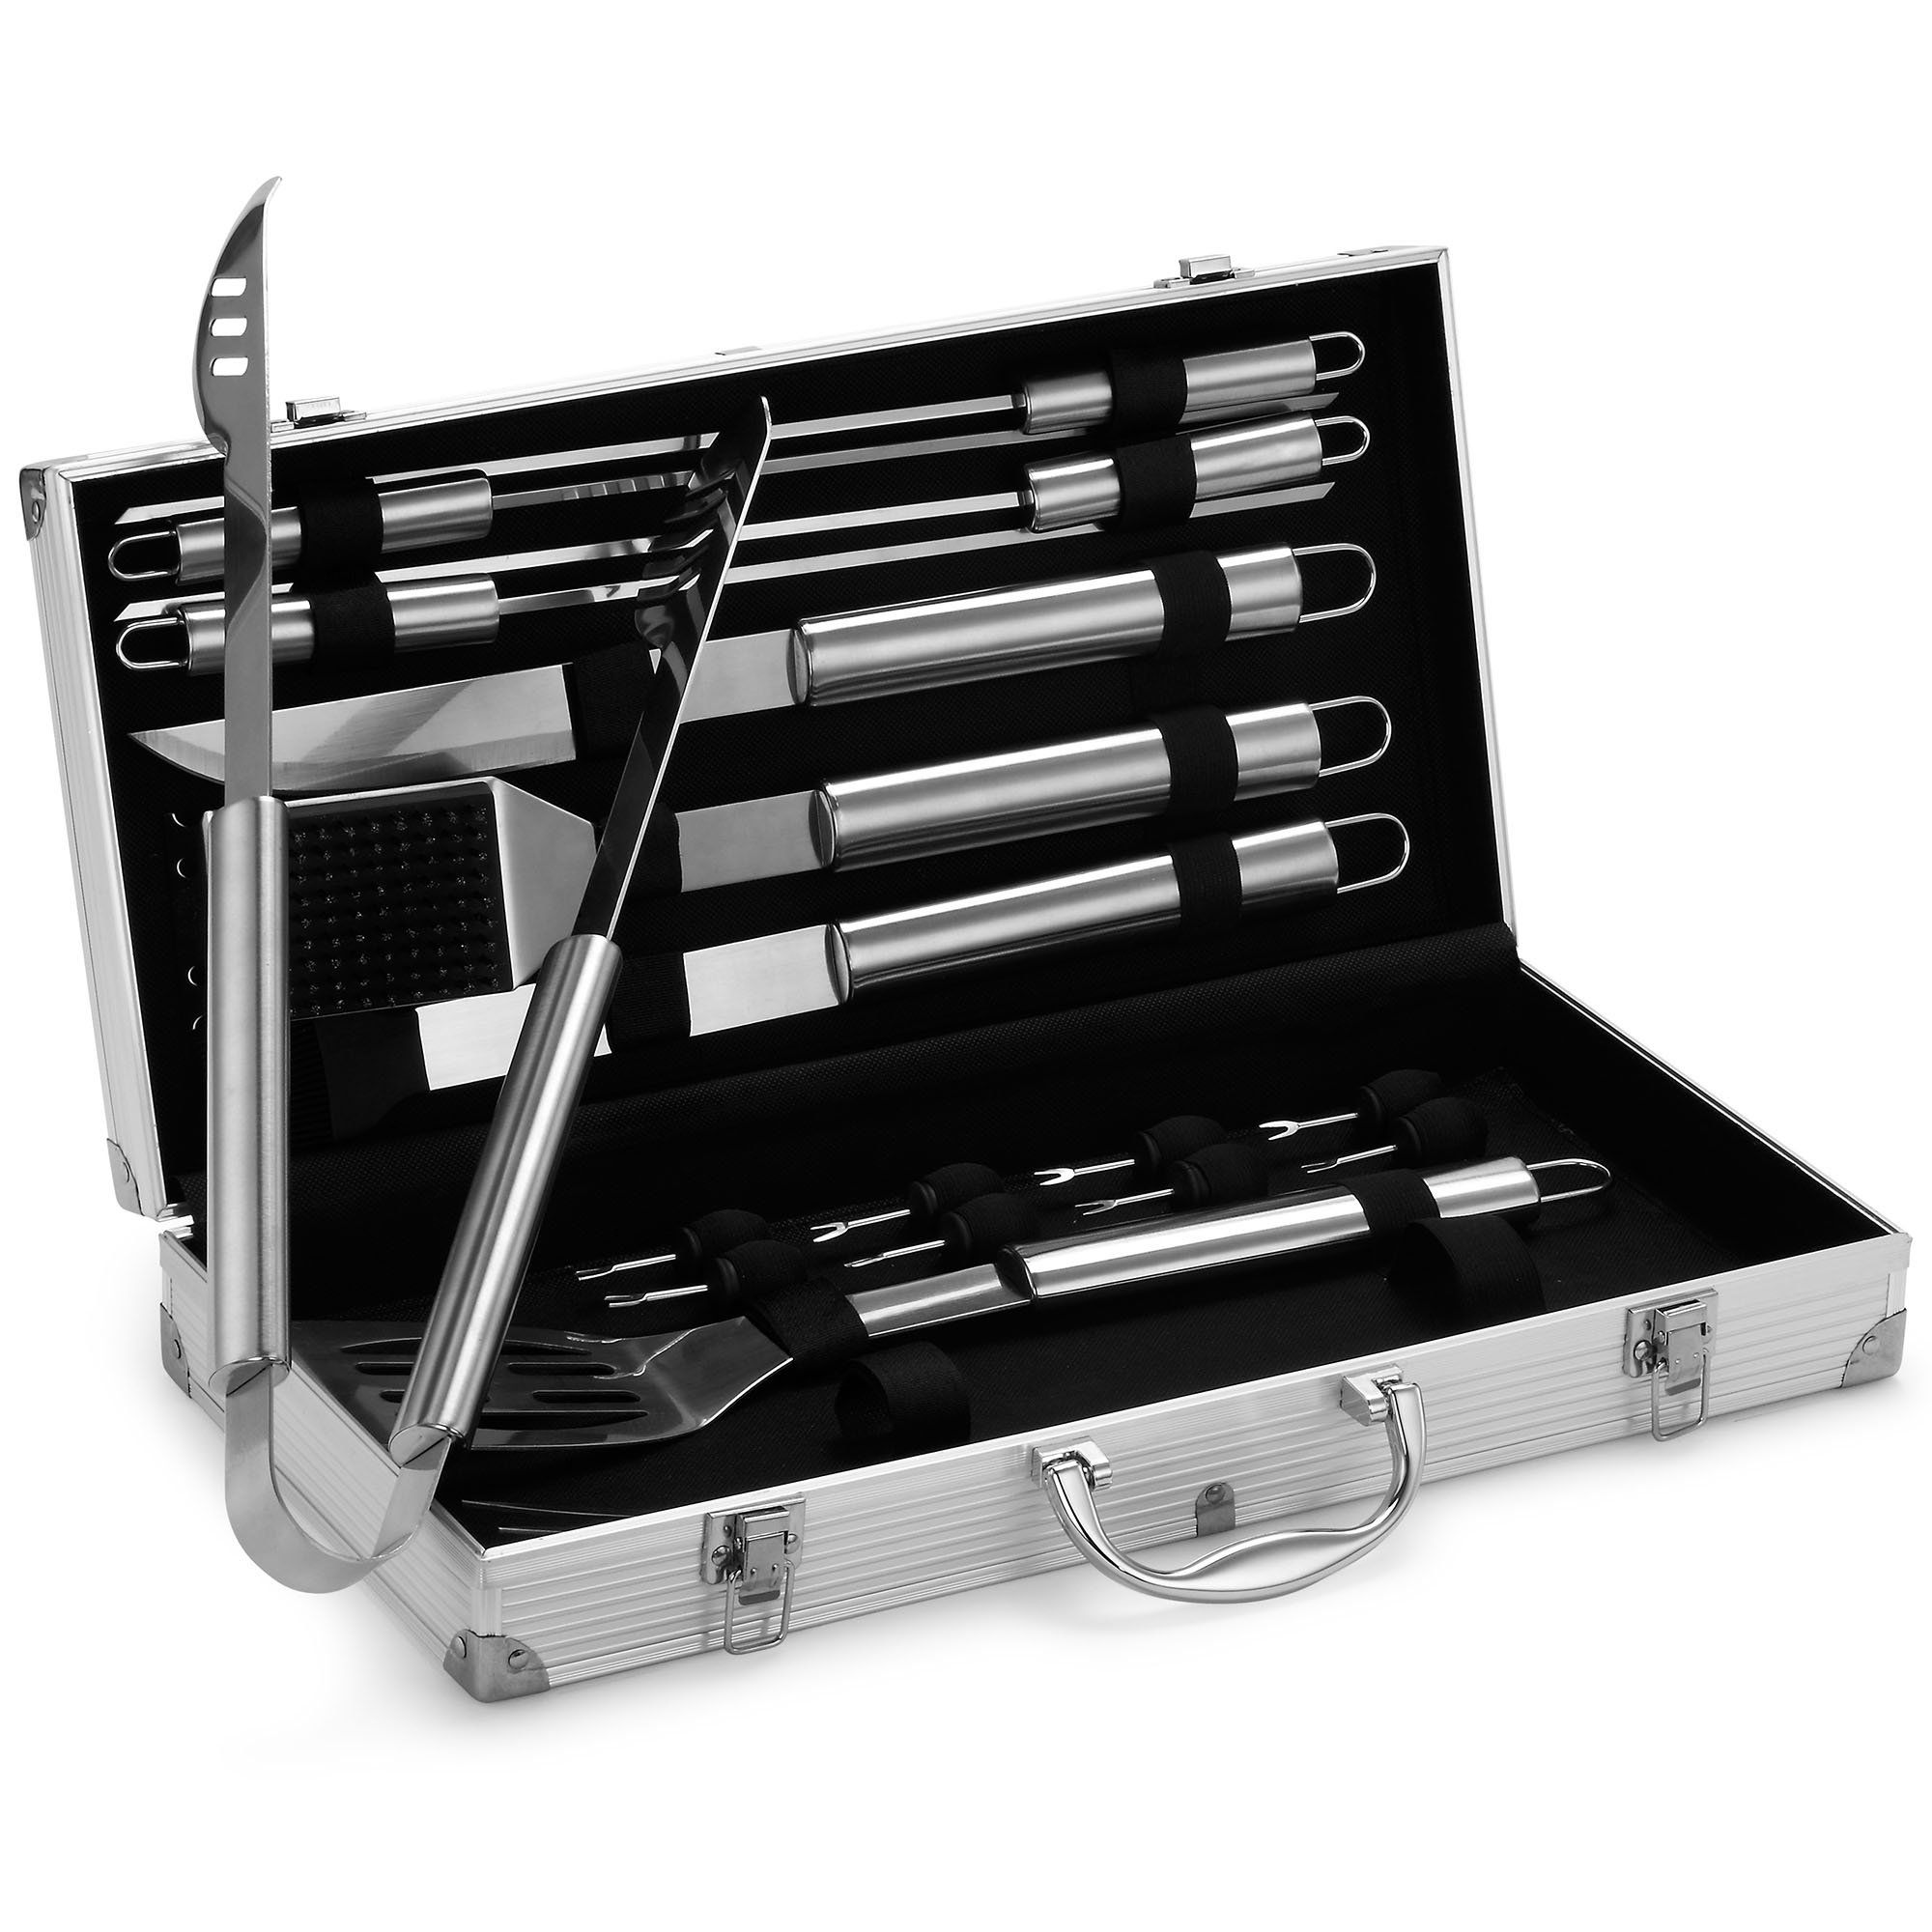 Vonhaus 18 Piece Stainless Steel Bbq Accessories Tool Set Includes Aluminum Storage Case For Barbecue Grill Utensils